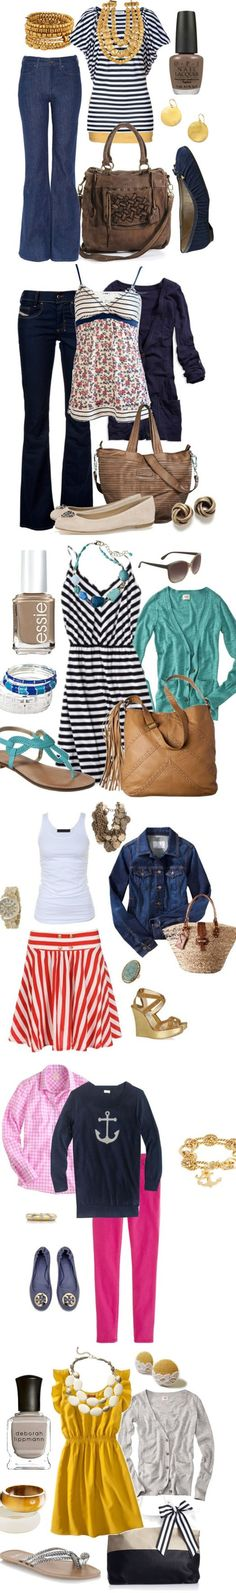 Nautical Spring Fashion 2013 at www.honeybearlane.com #spring #fashion